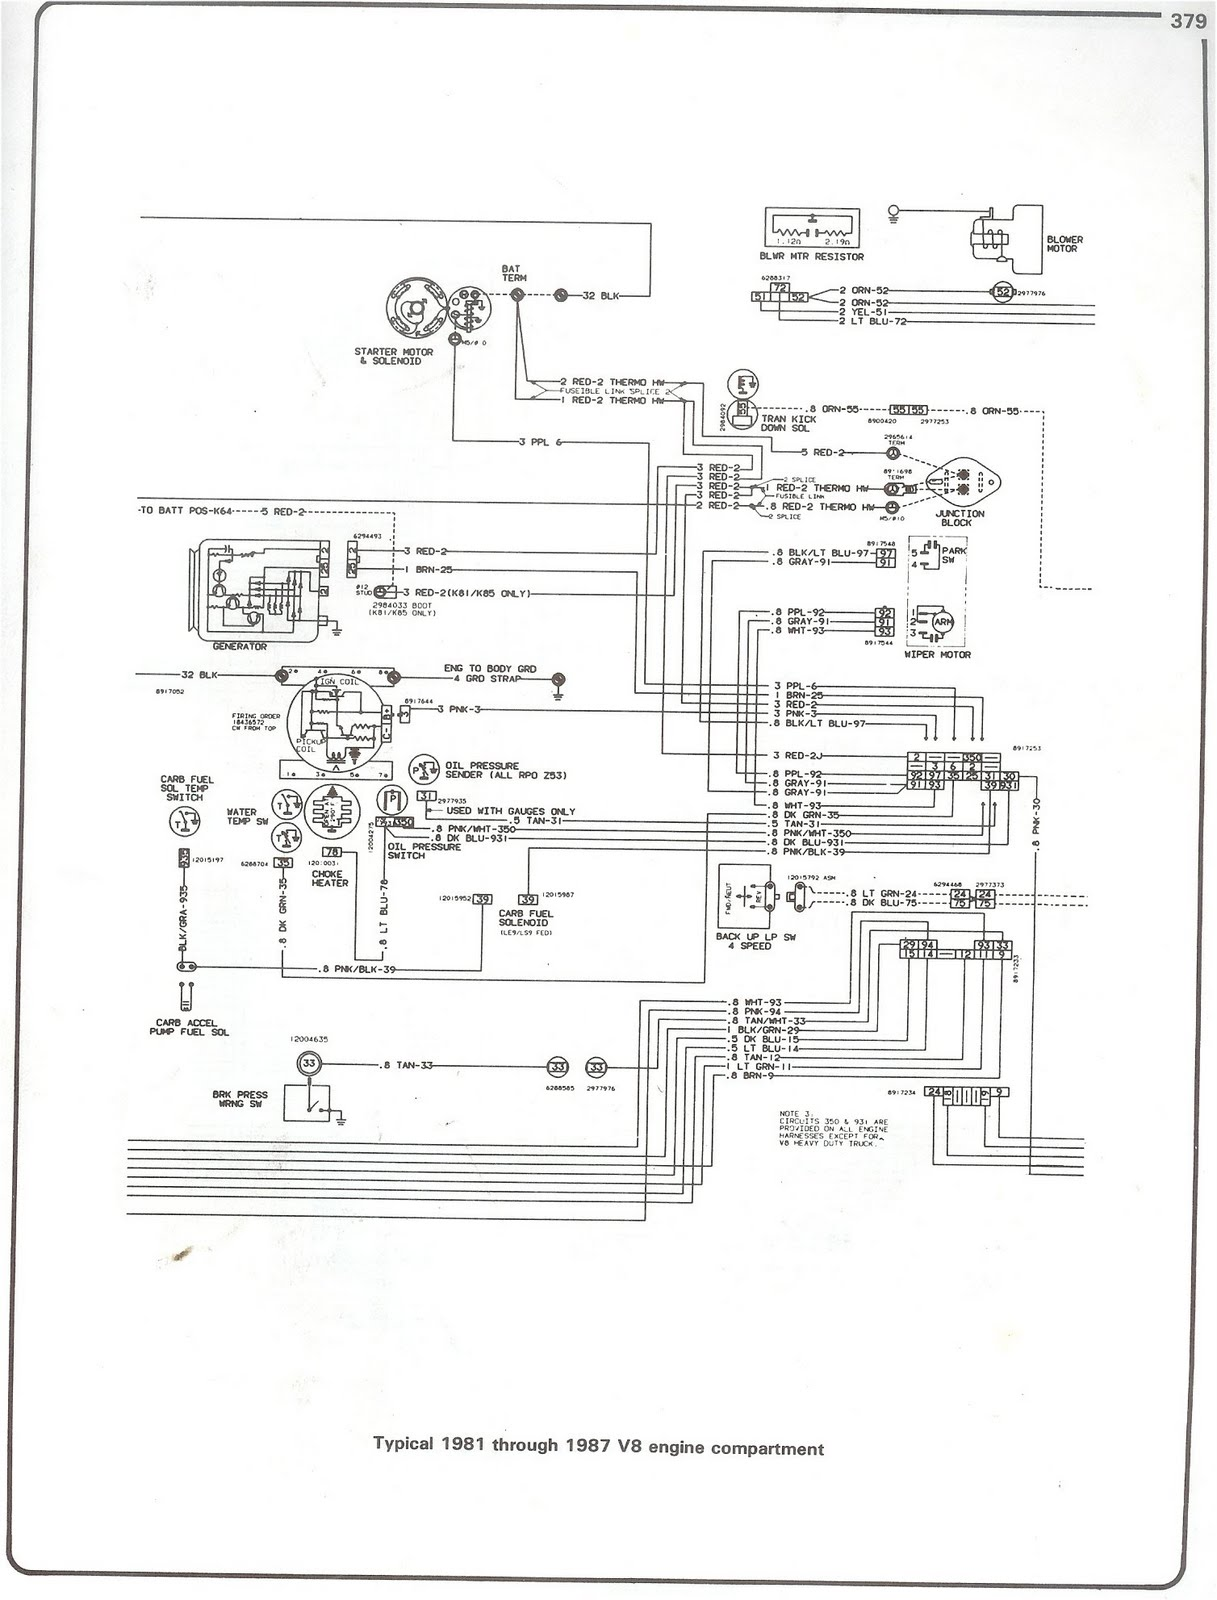 1981 Gm Fuse Box Diagram Images Gallery